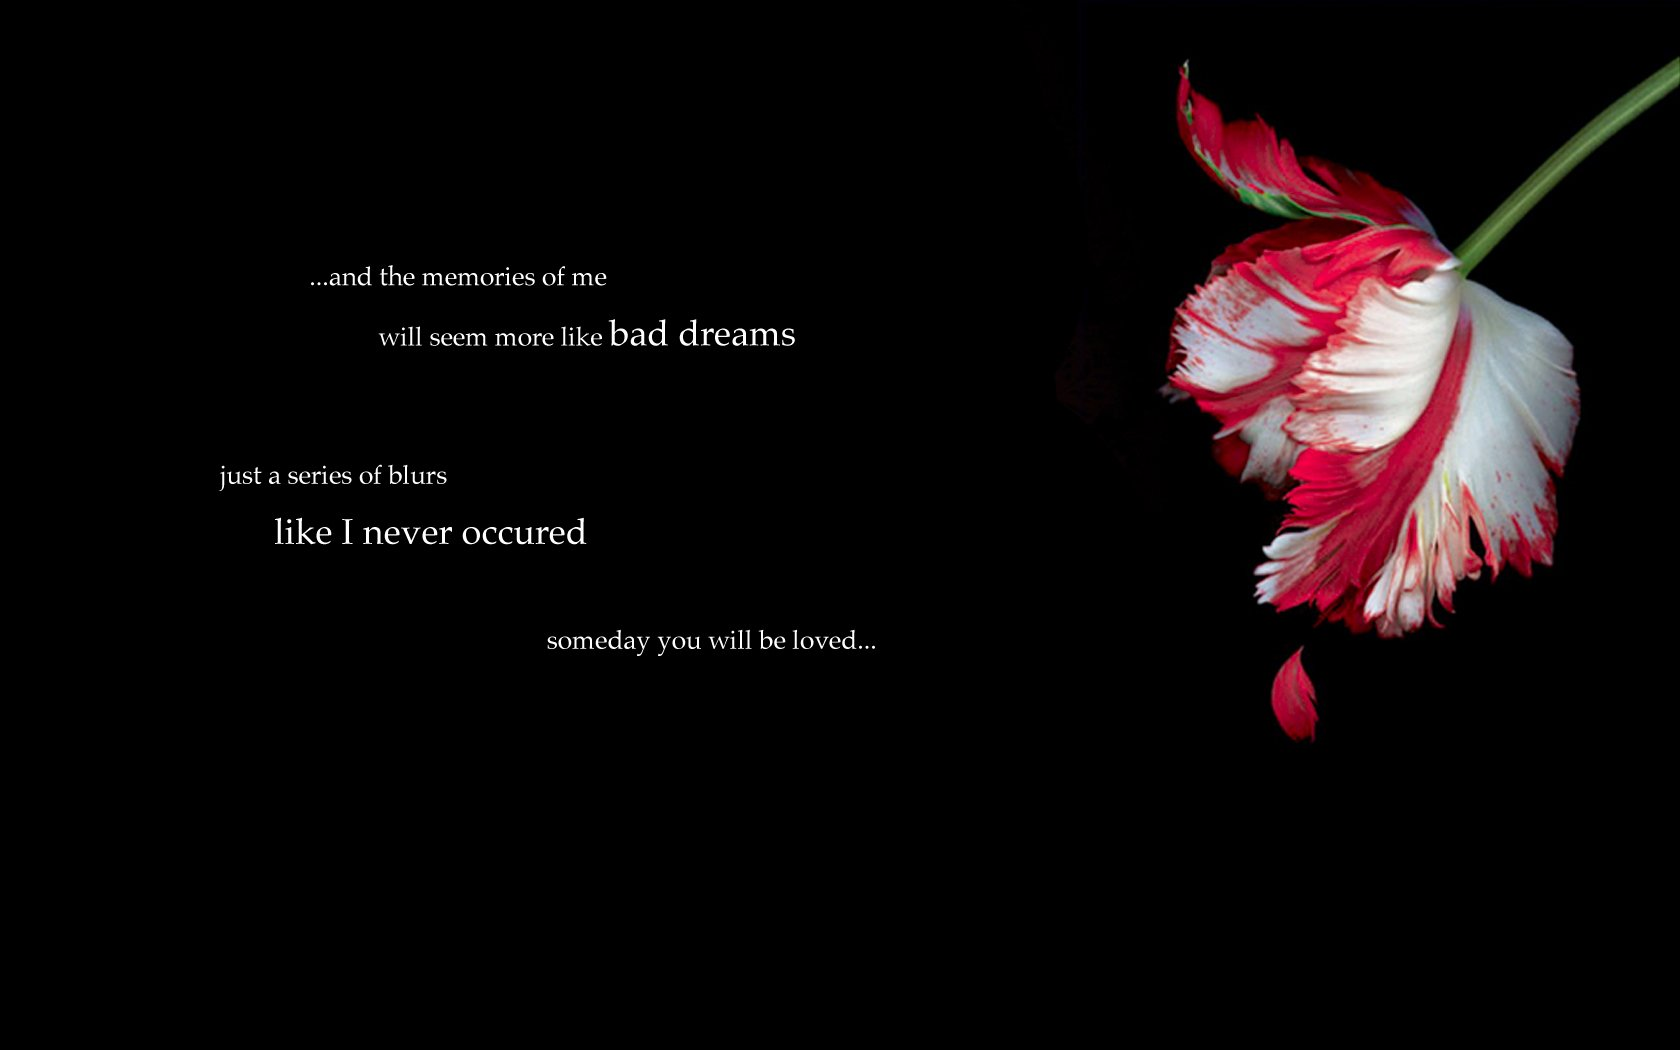 Emo wallpaper and background image 1680x1050 id 285426 - Cool wallpapers emo ...